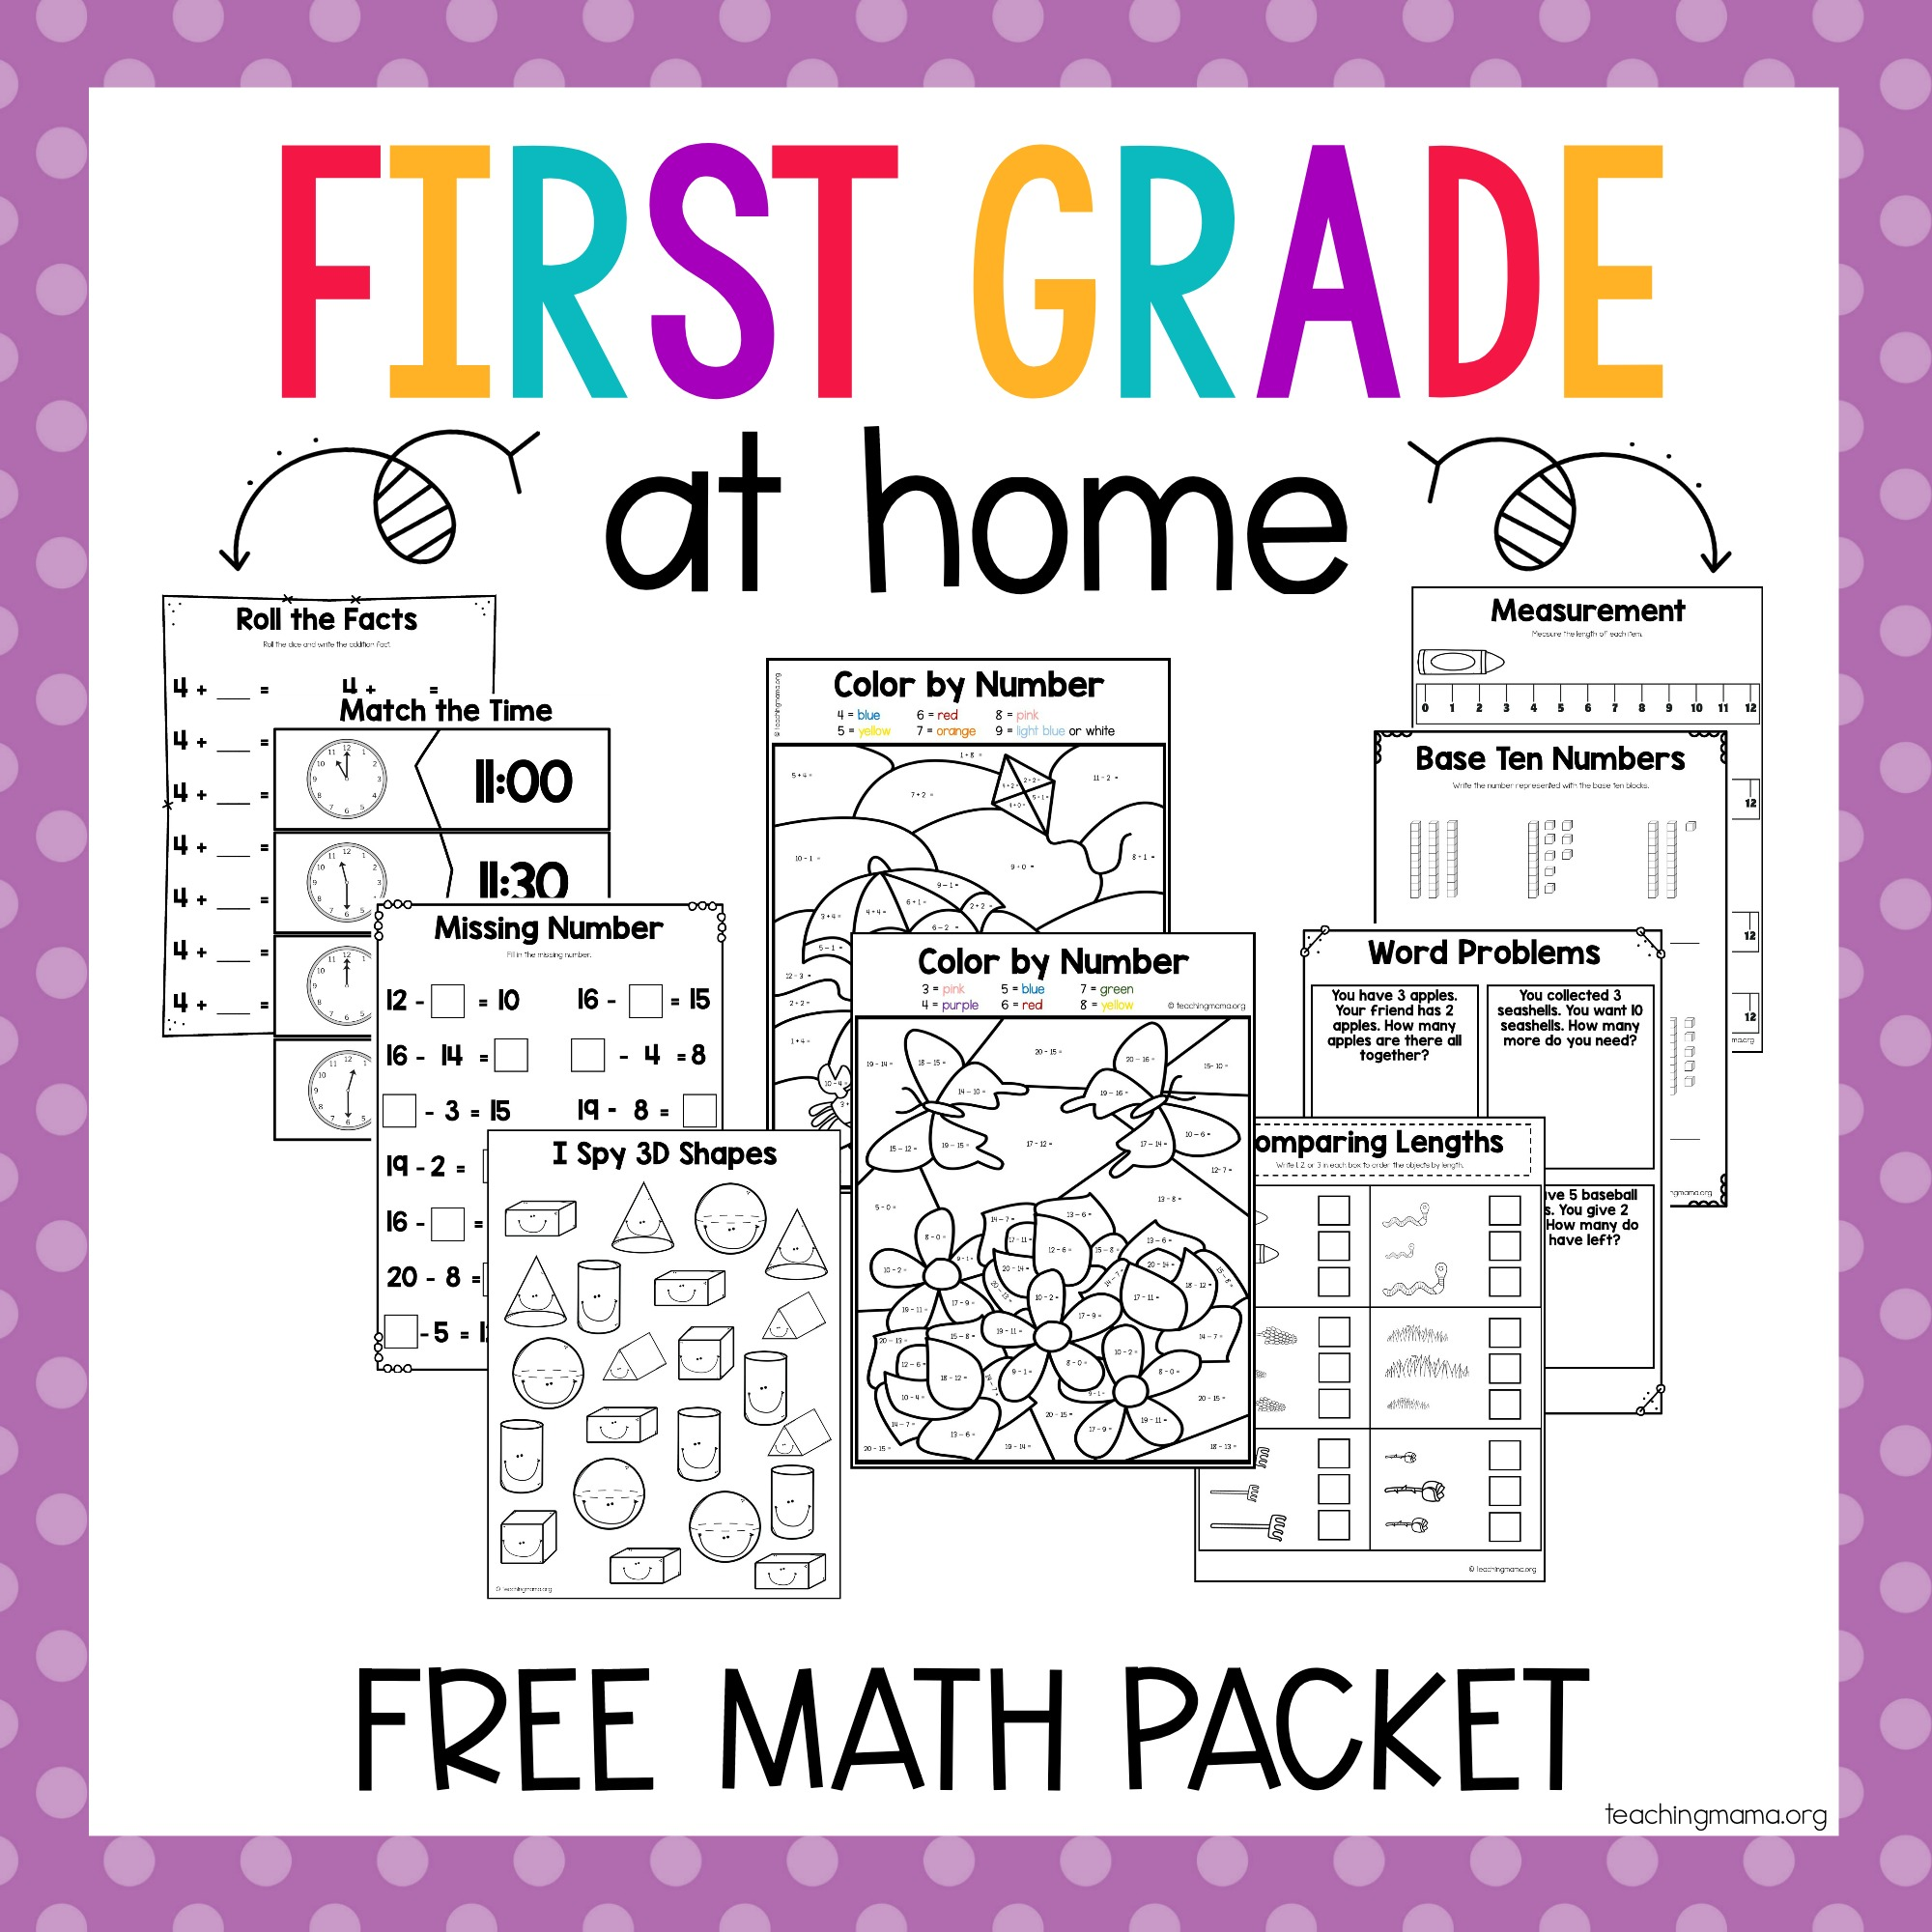 hight resolution of First Grade At Home Math Packet - Teaching Mama